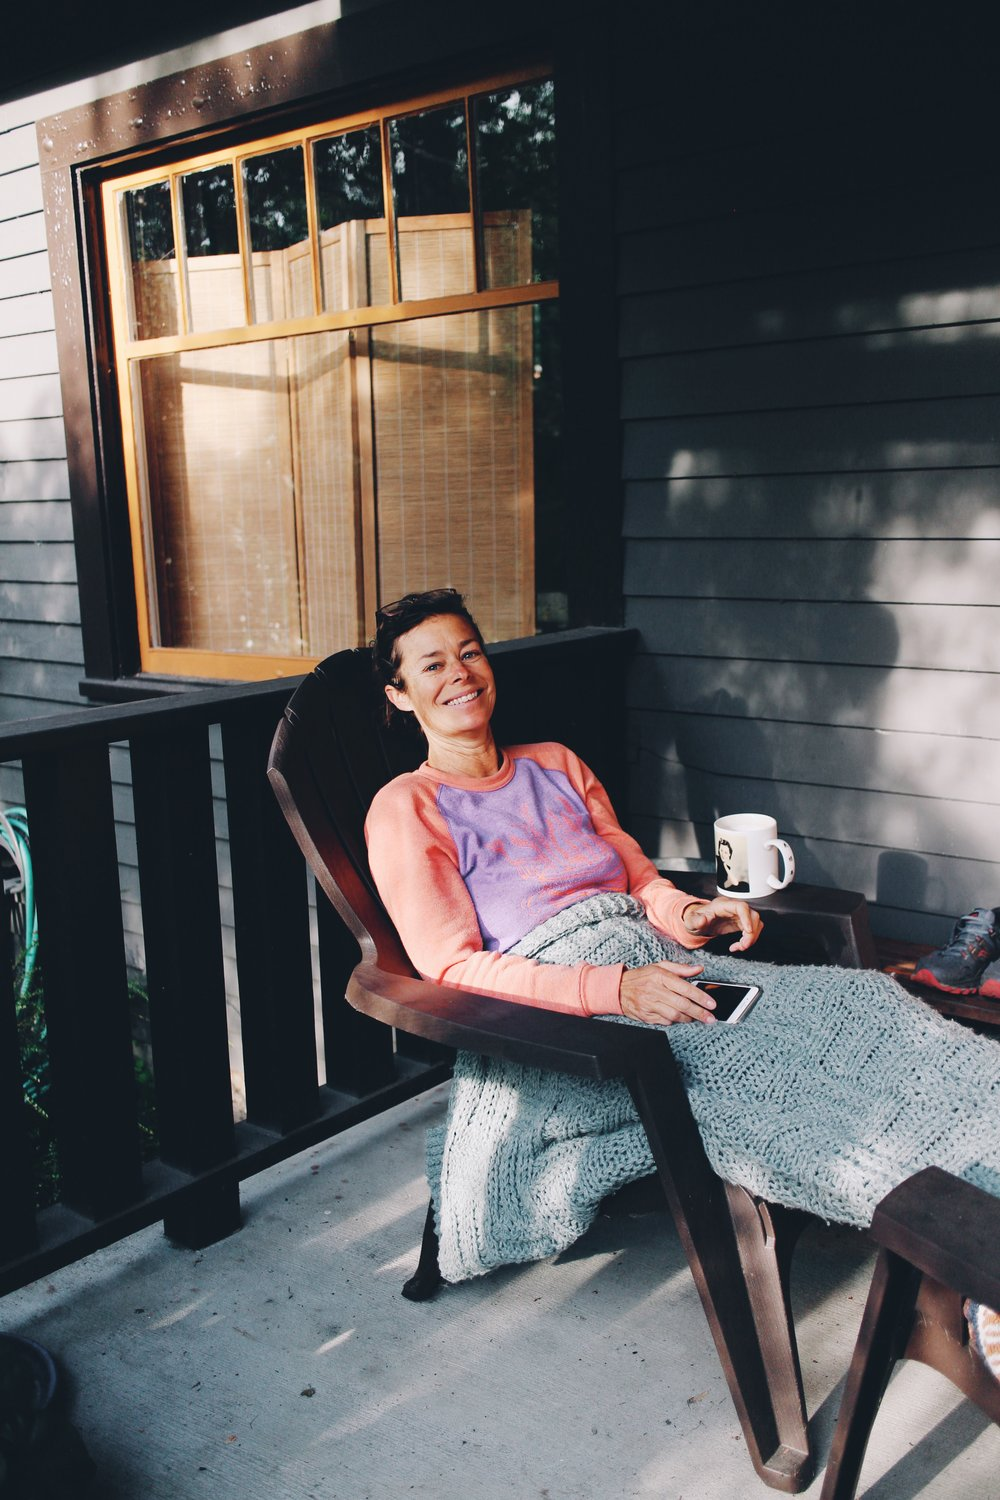 Eve enjoying her cup of tea on her porch in Portland.